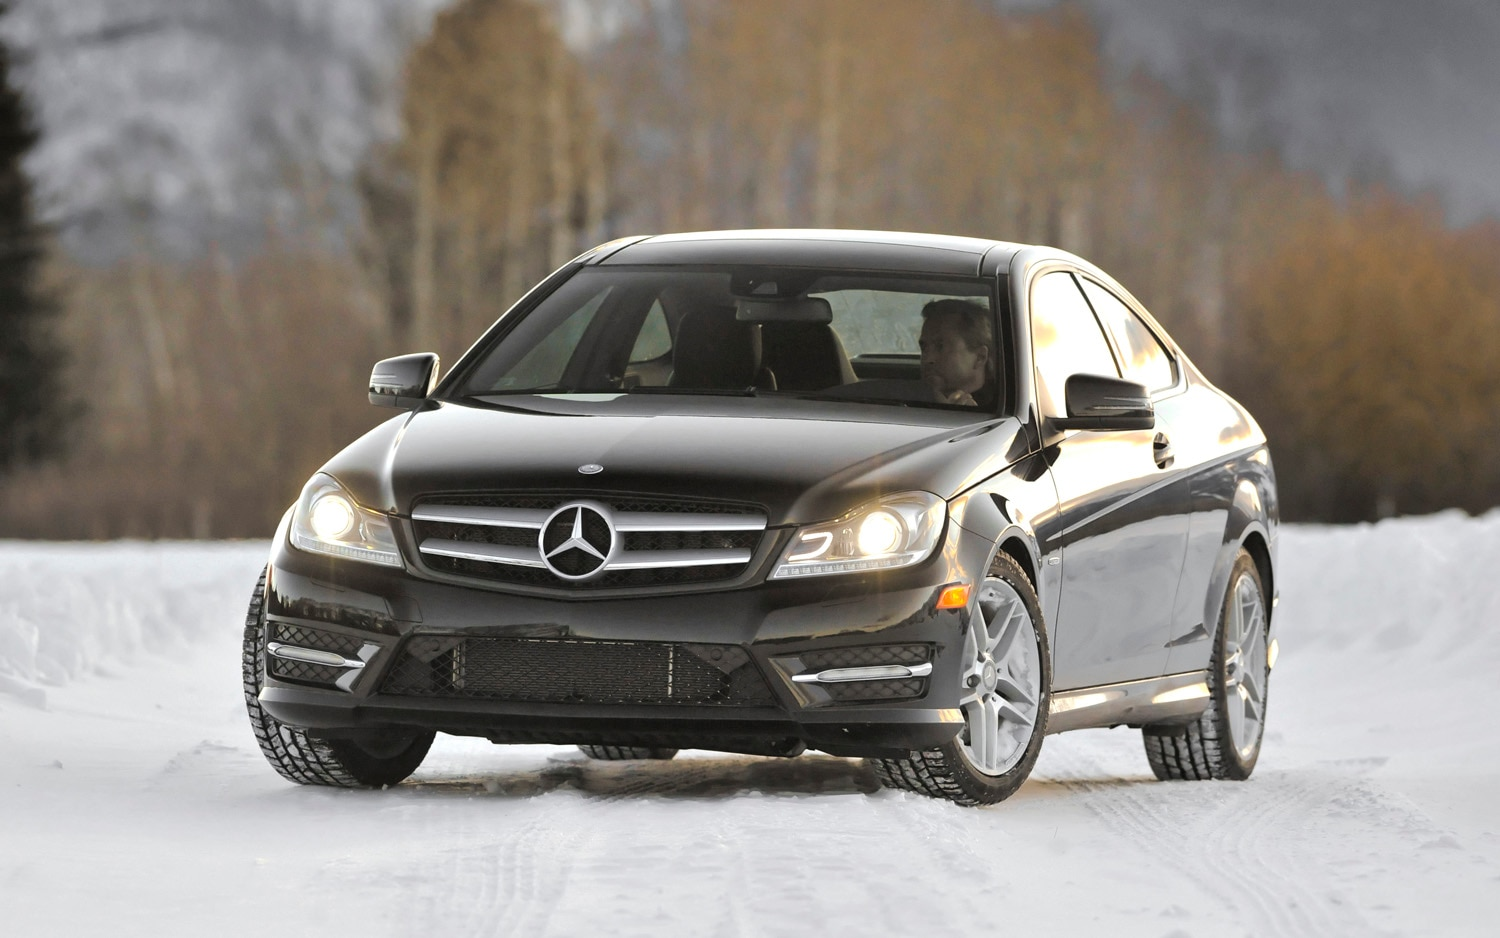 2012 Mercedes Benz C350 Coupe 4matic